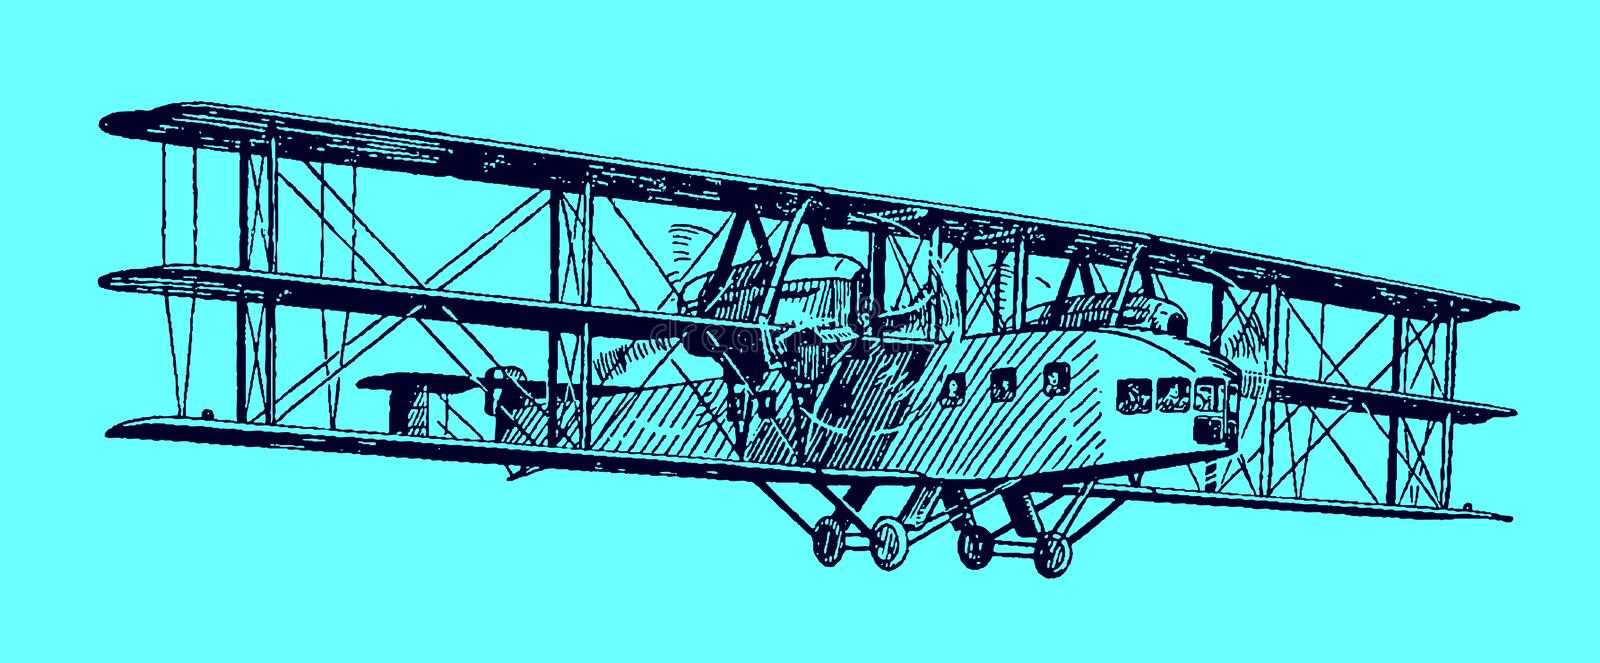 Flying historical propeller-driven triplane airliner transporting passengers. Illustration on a blue background after a stock images